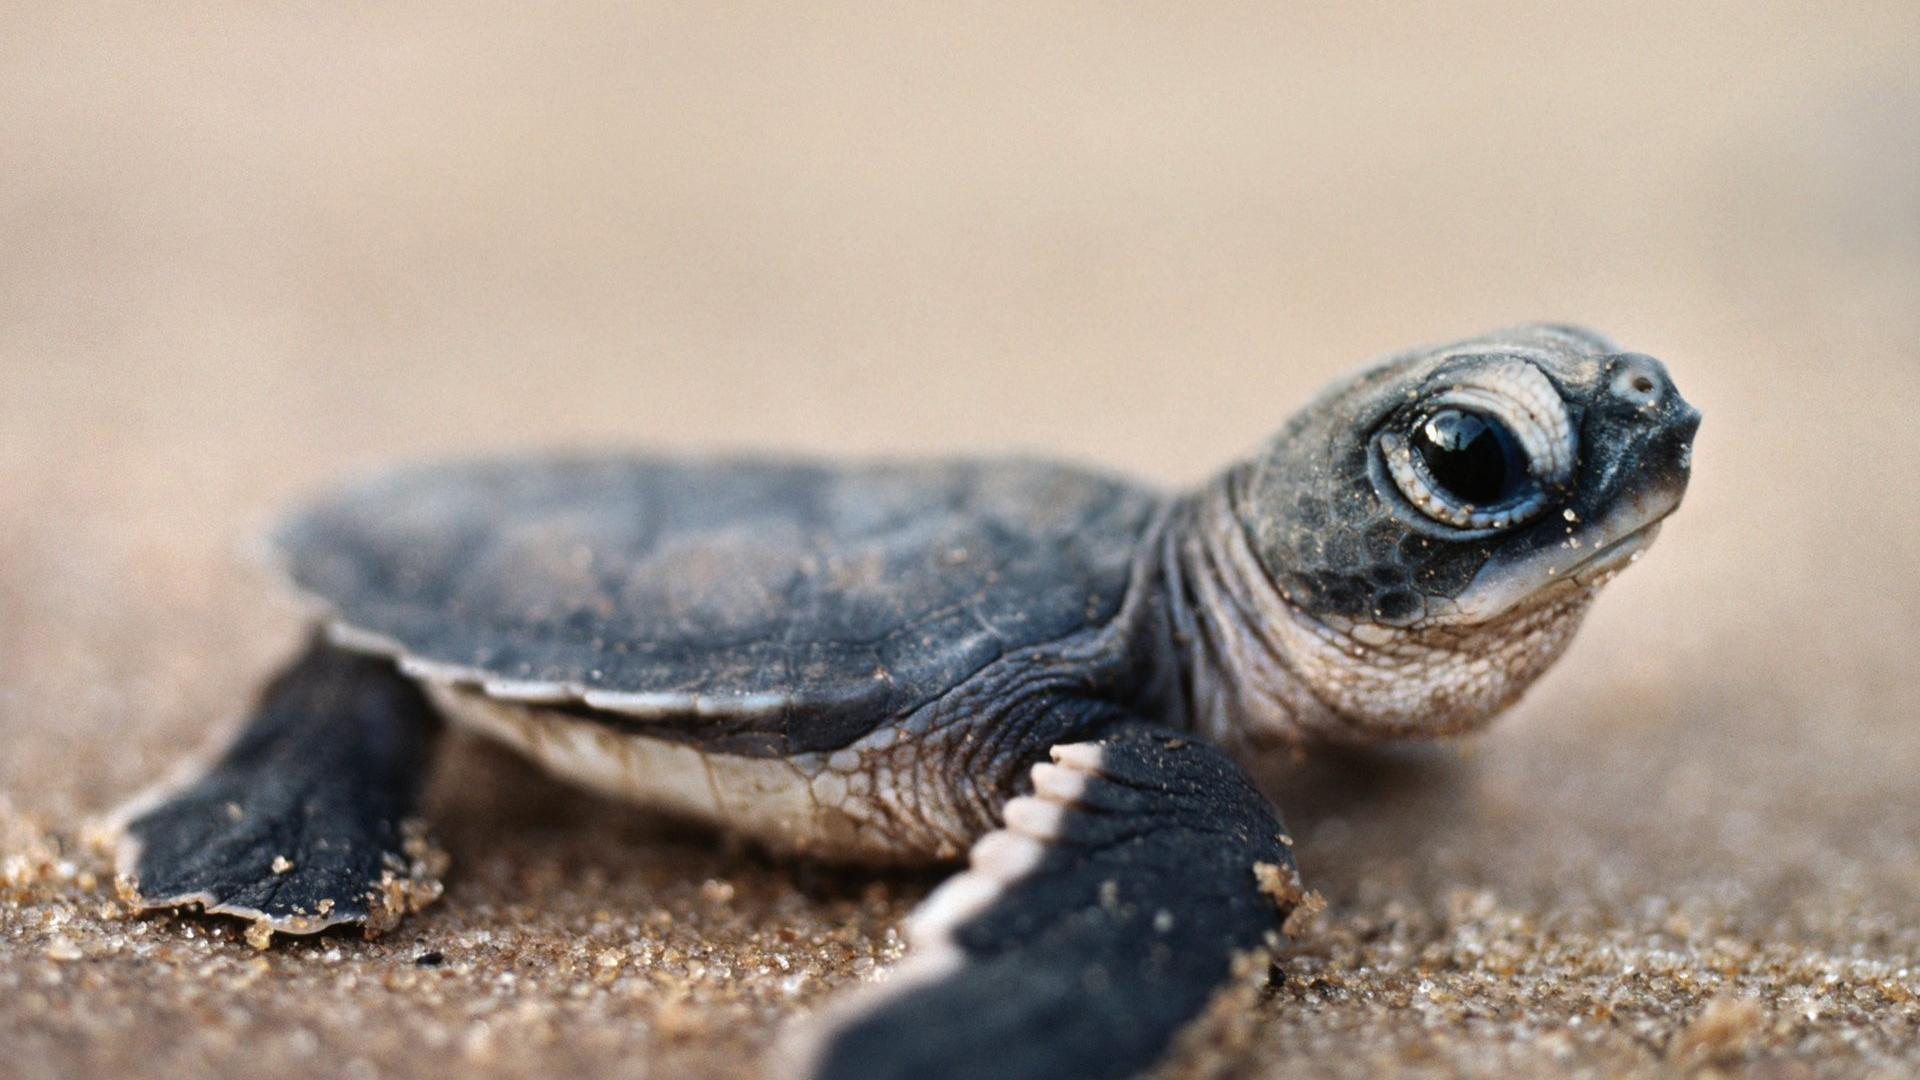 Scores Of Baby Sea Turtles Released In Davao City Scitech Gma News Online